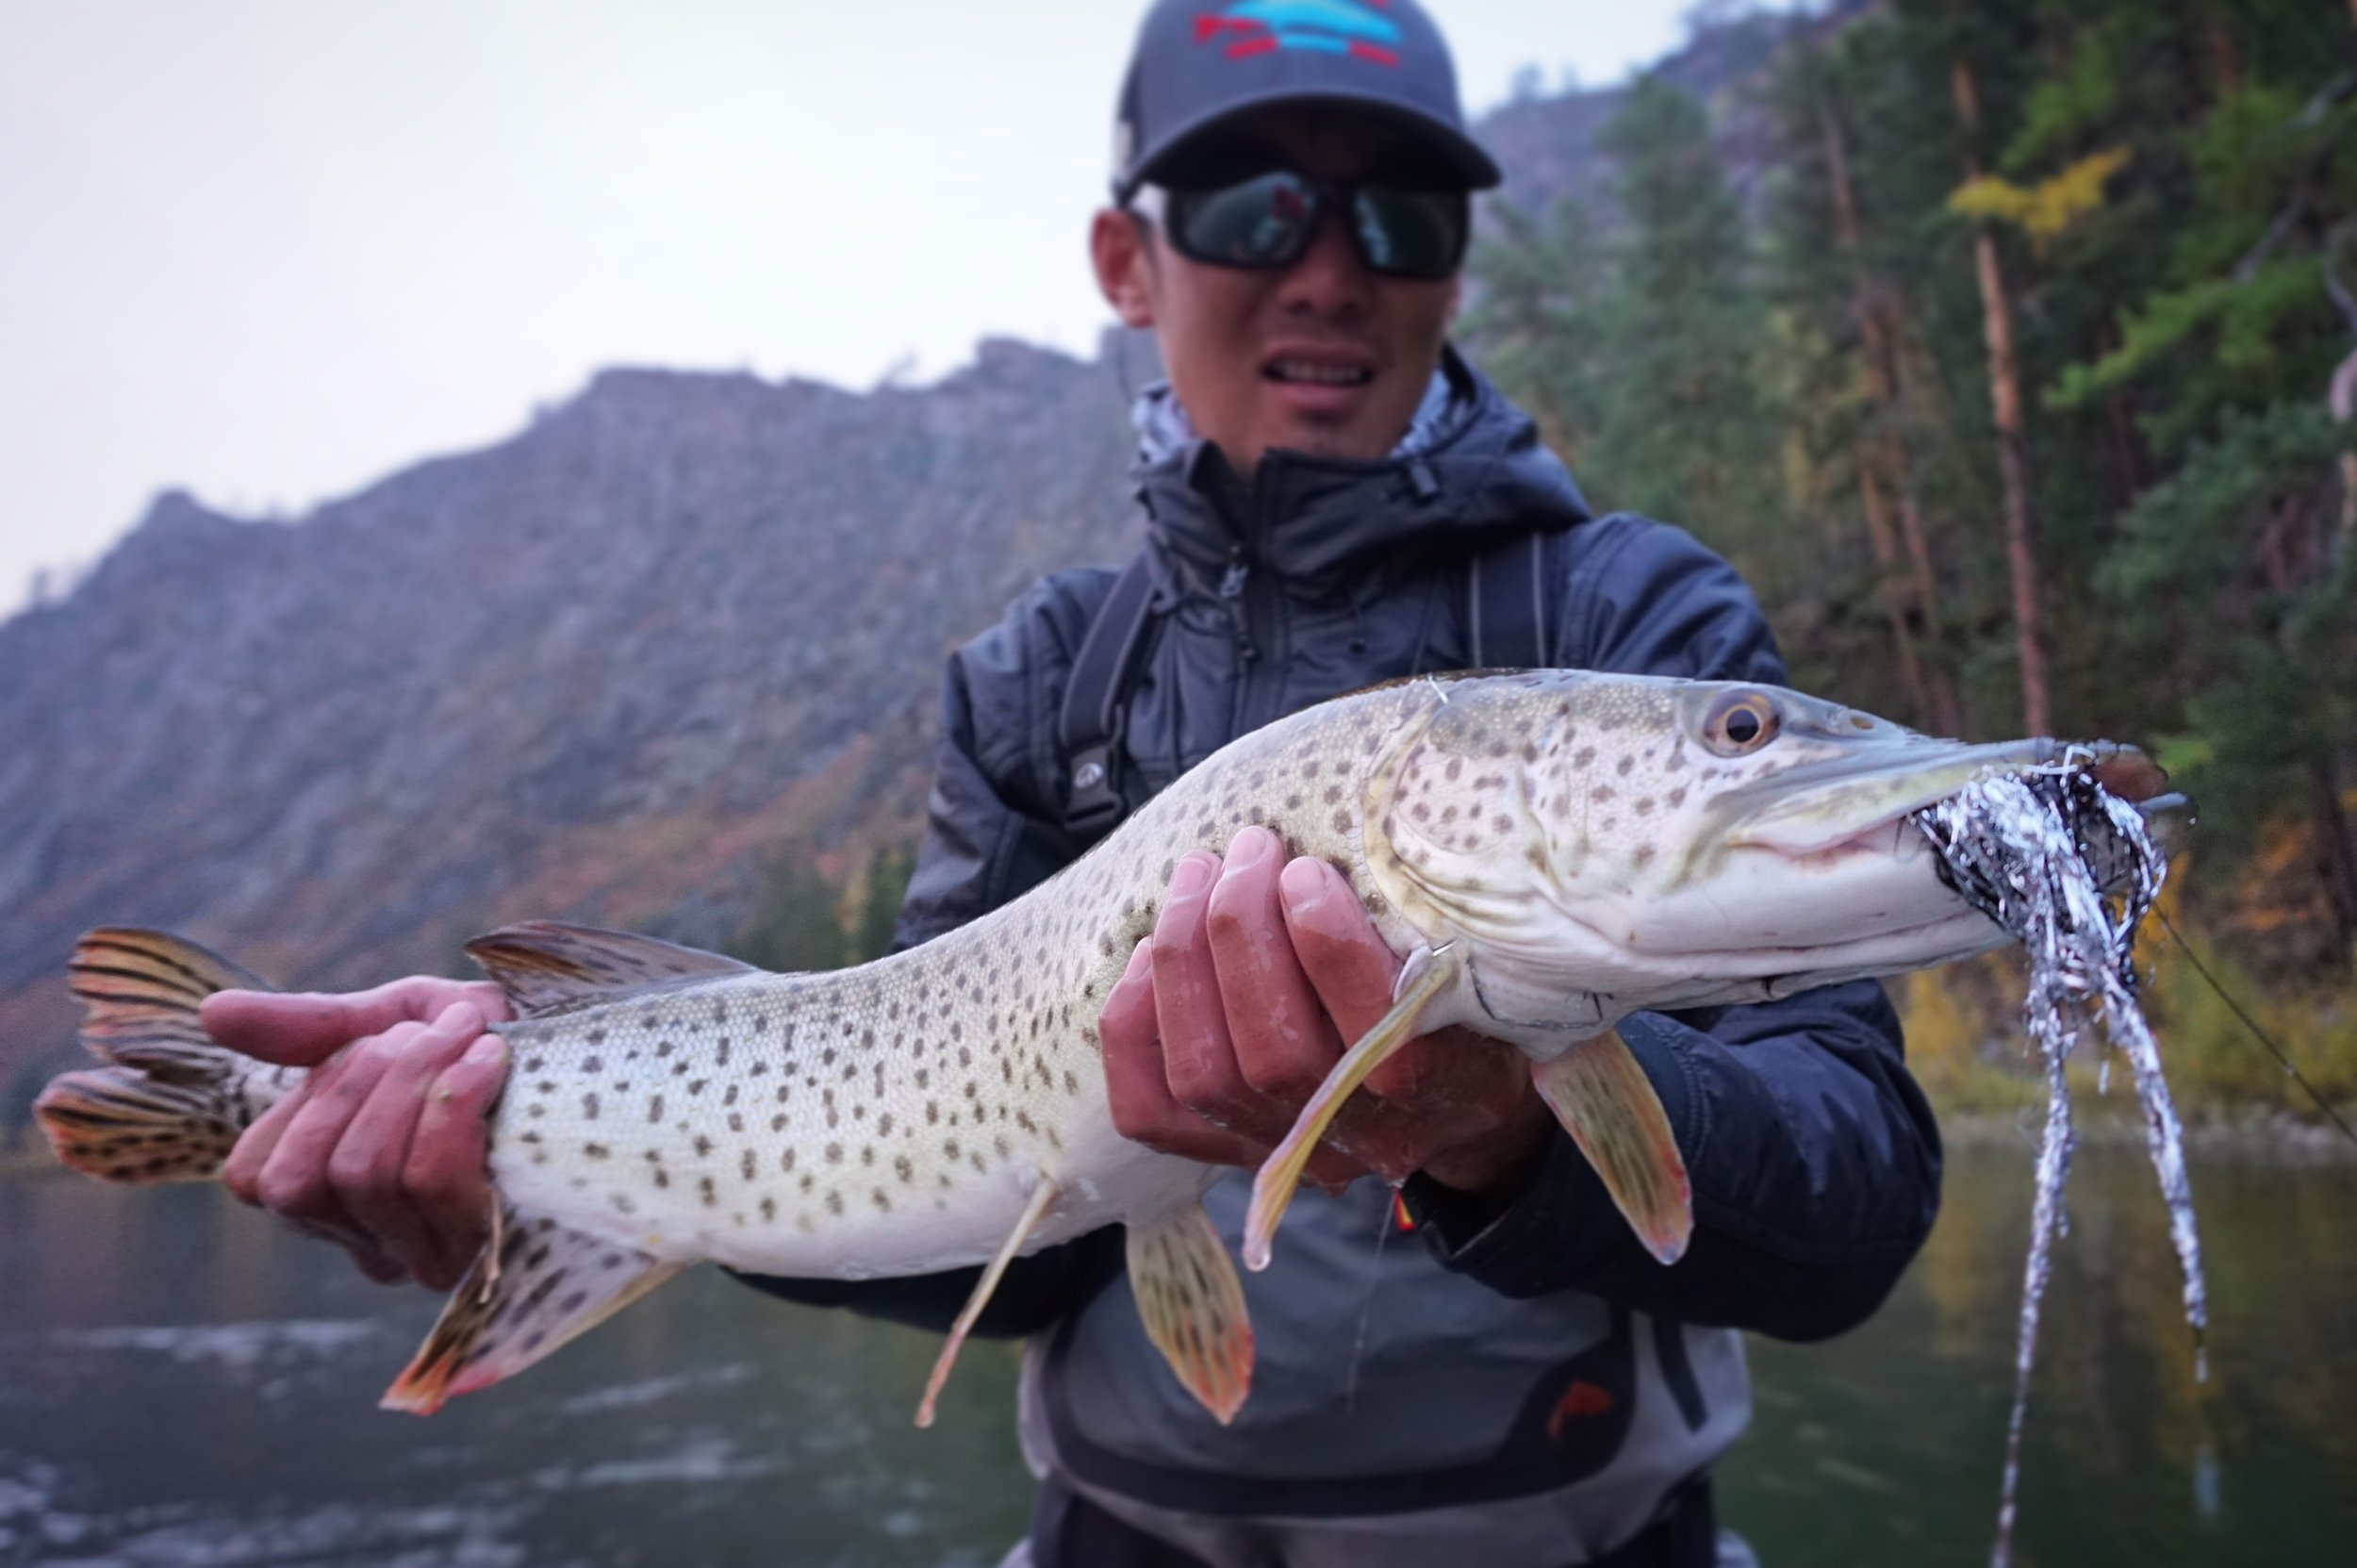 Mongolian fly fishing guide Zolboo with a big amur pike